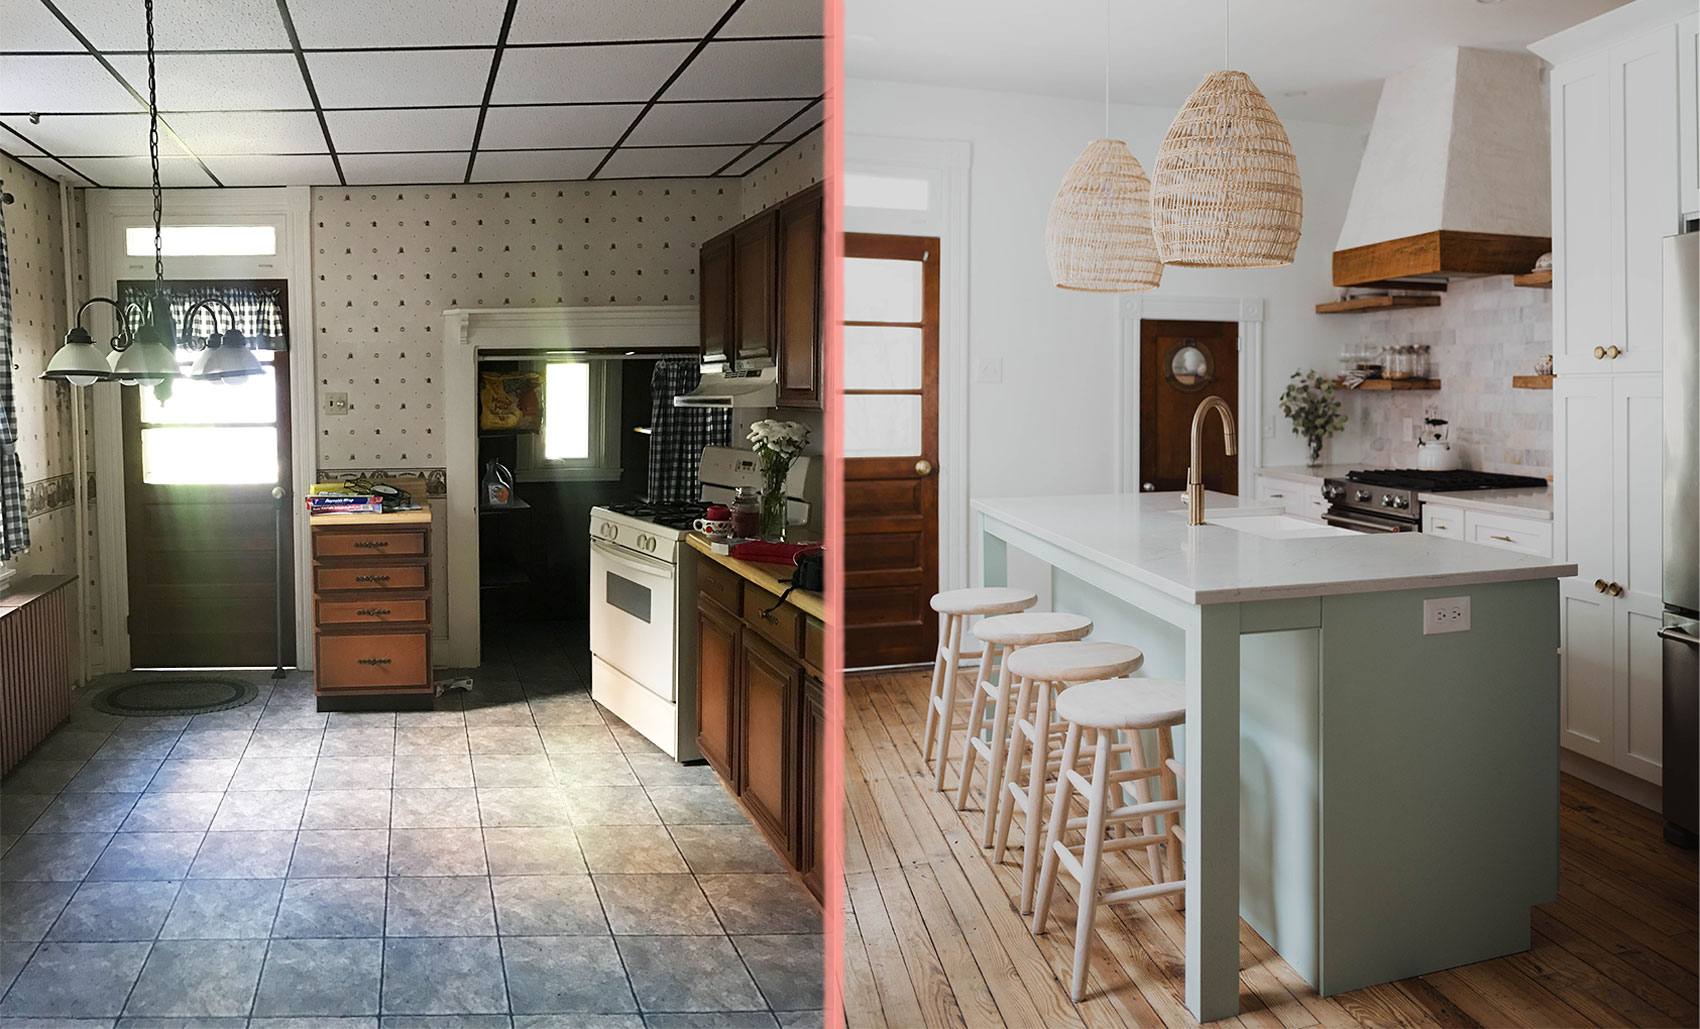 Before After Enlisting Expertise To Transform An 1800s Row Home Design Sponge